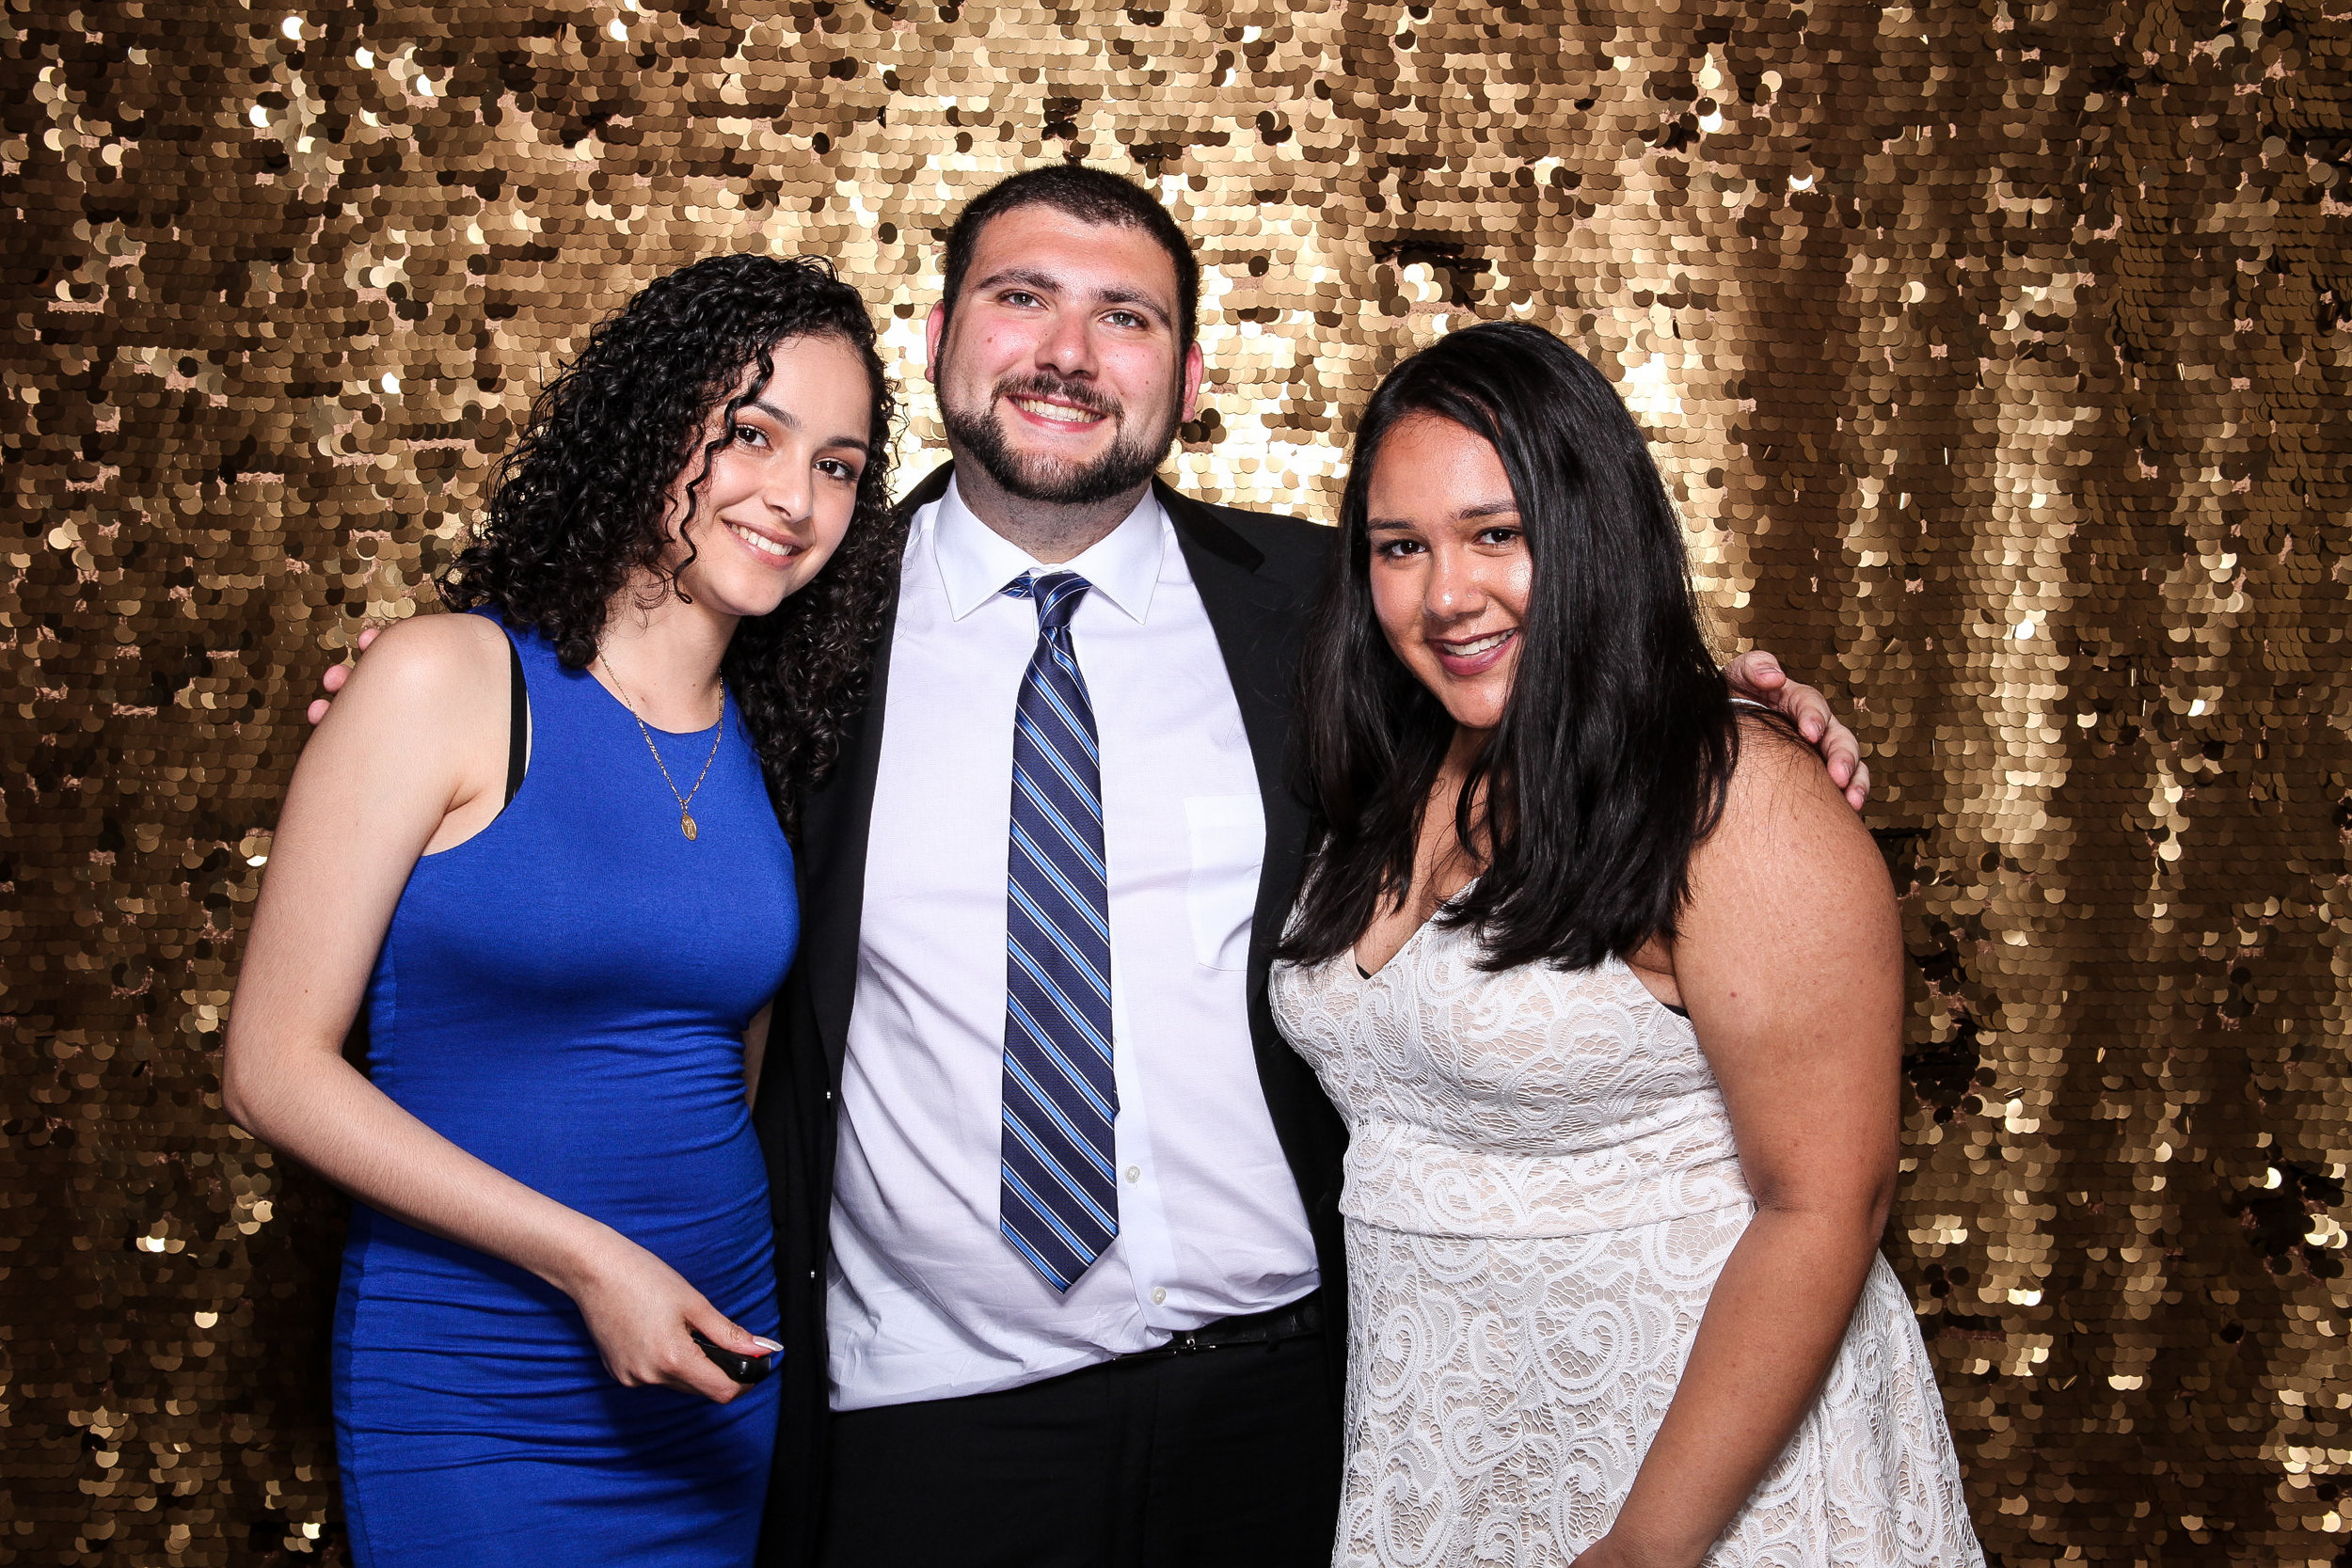 20190503_Adelphi_Senior_Formal-393.jpg